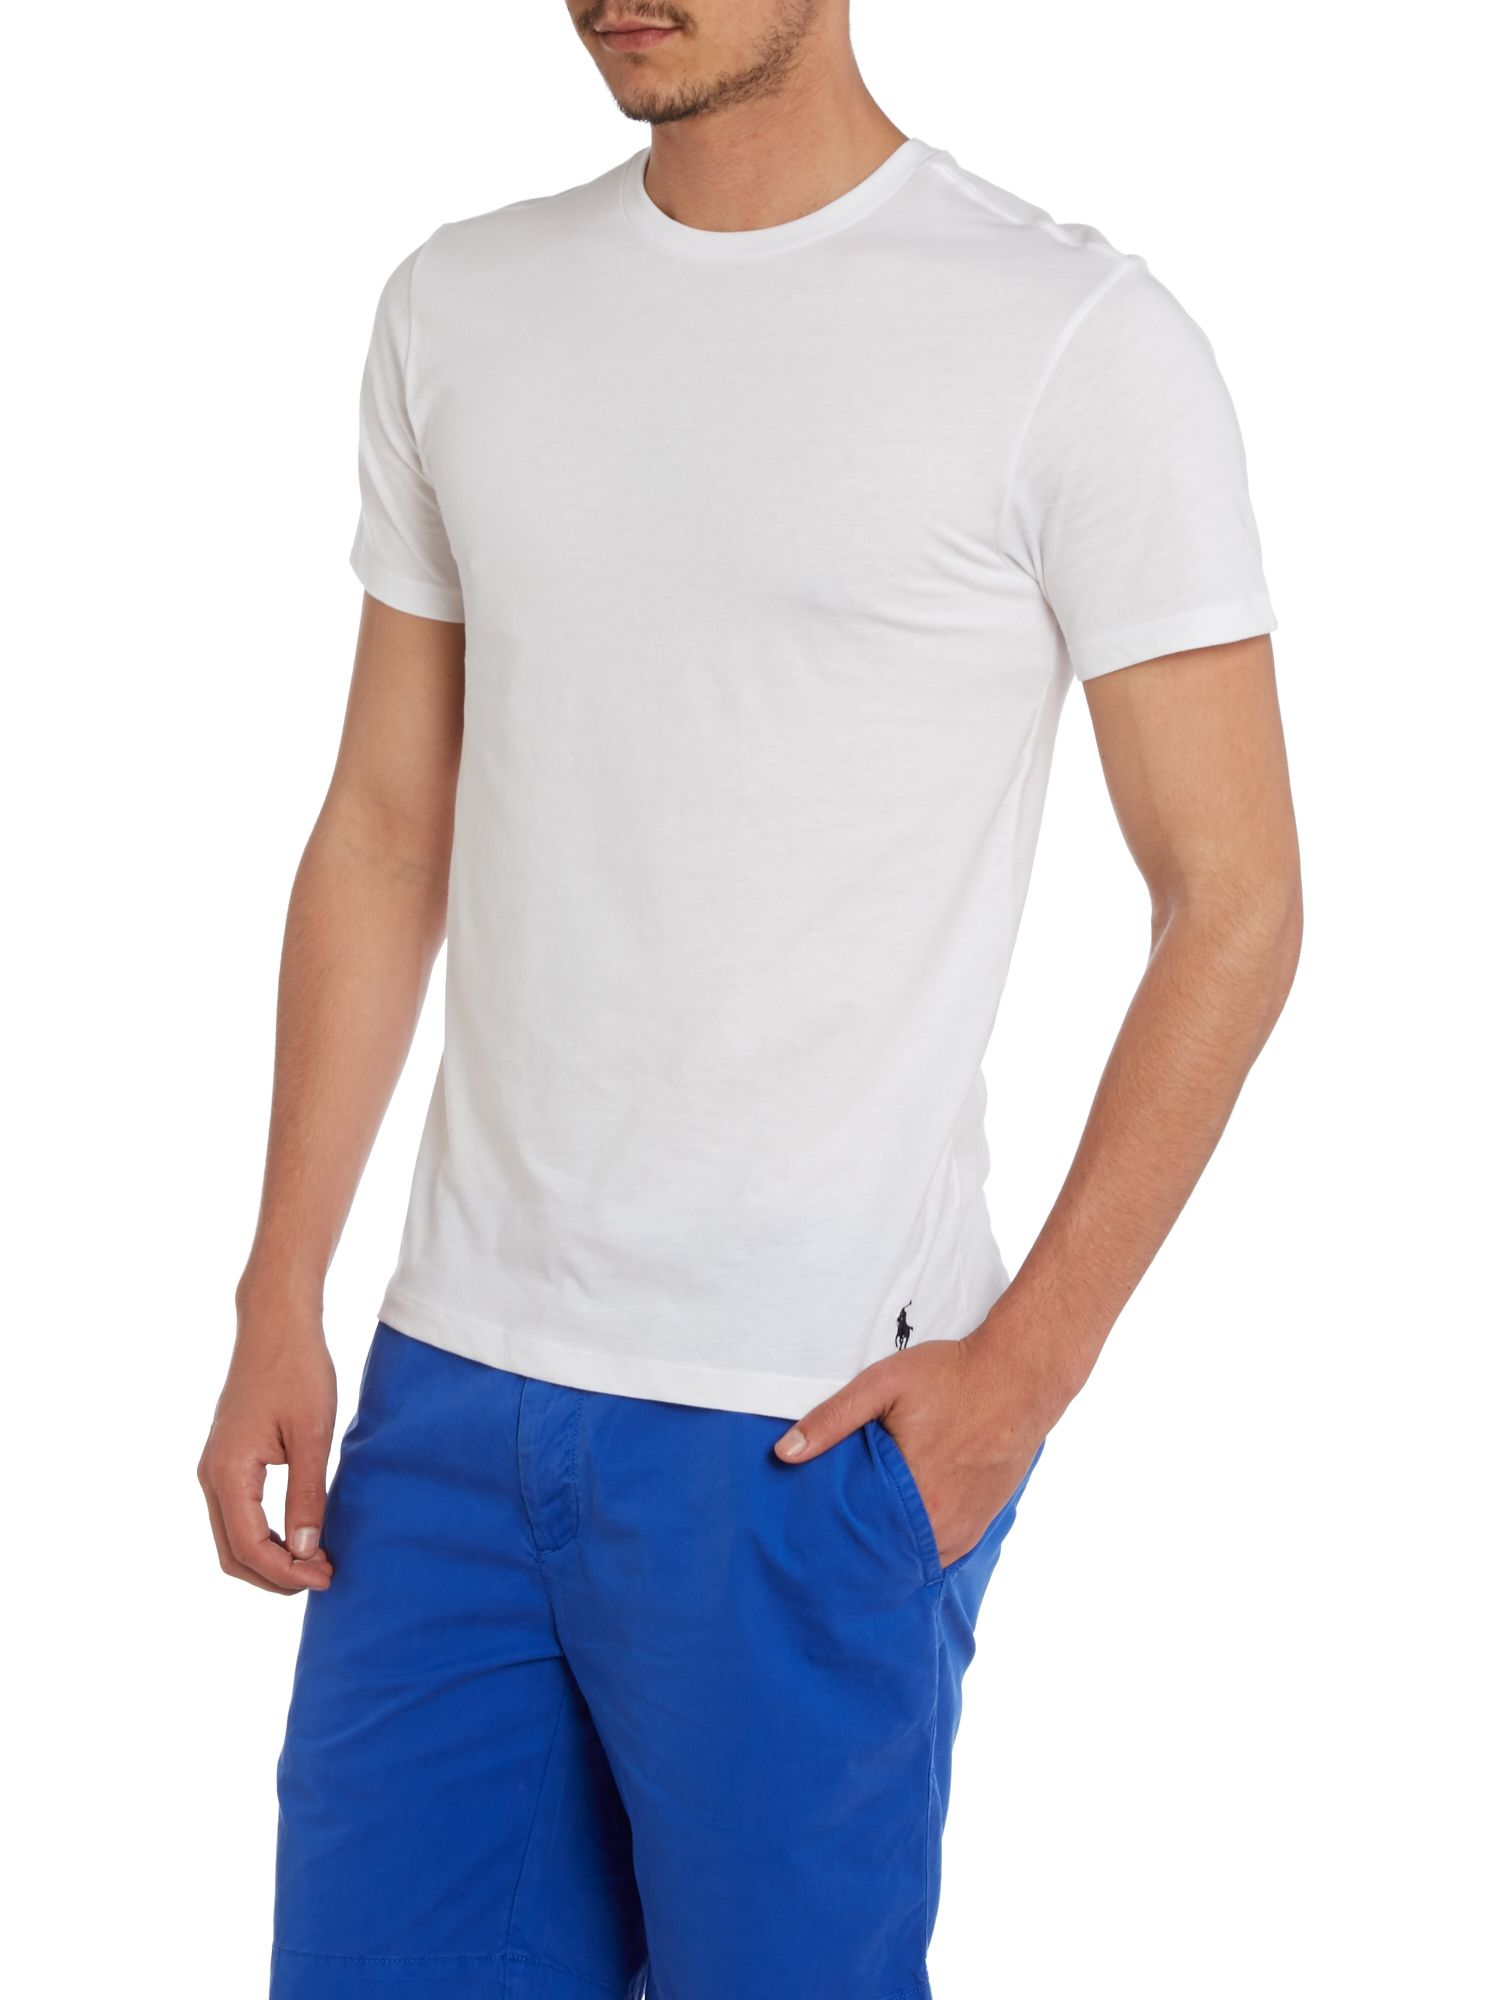 2 pack underwear T-shirt set